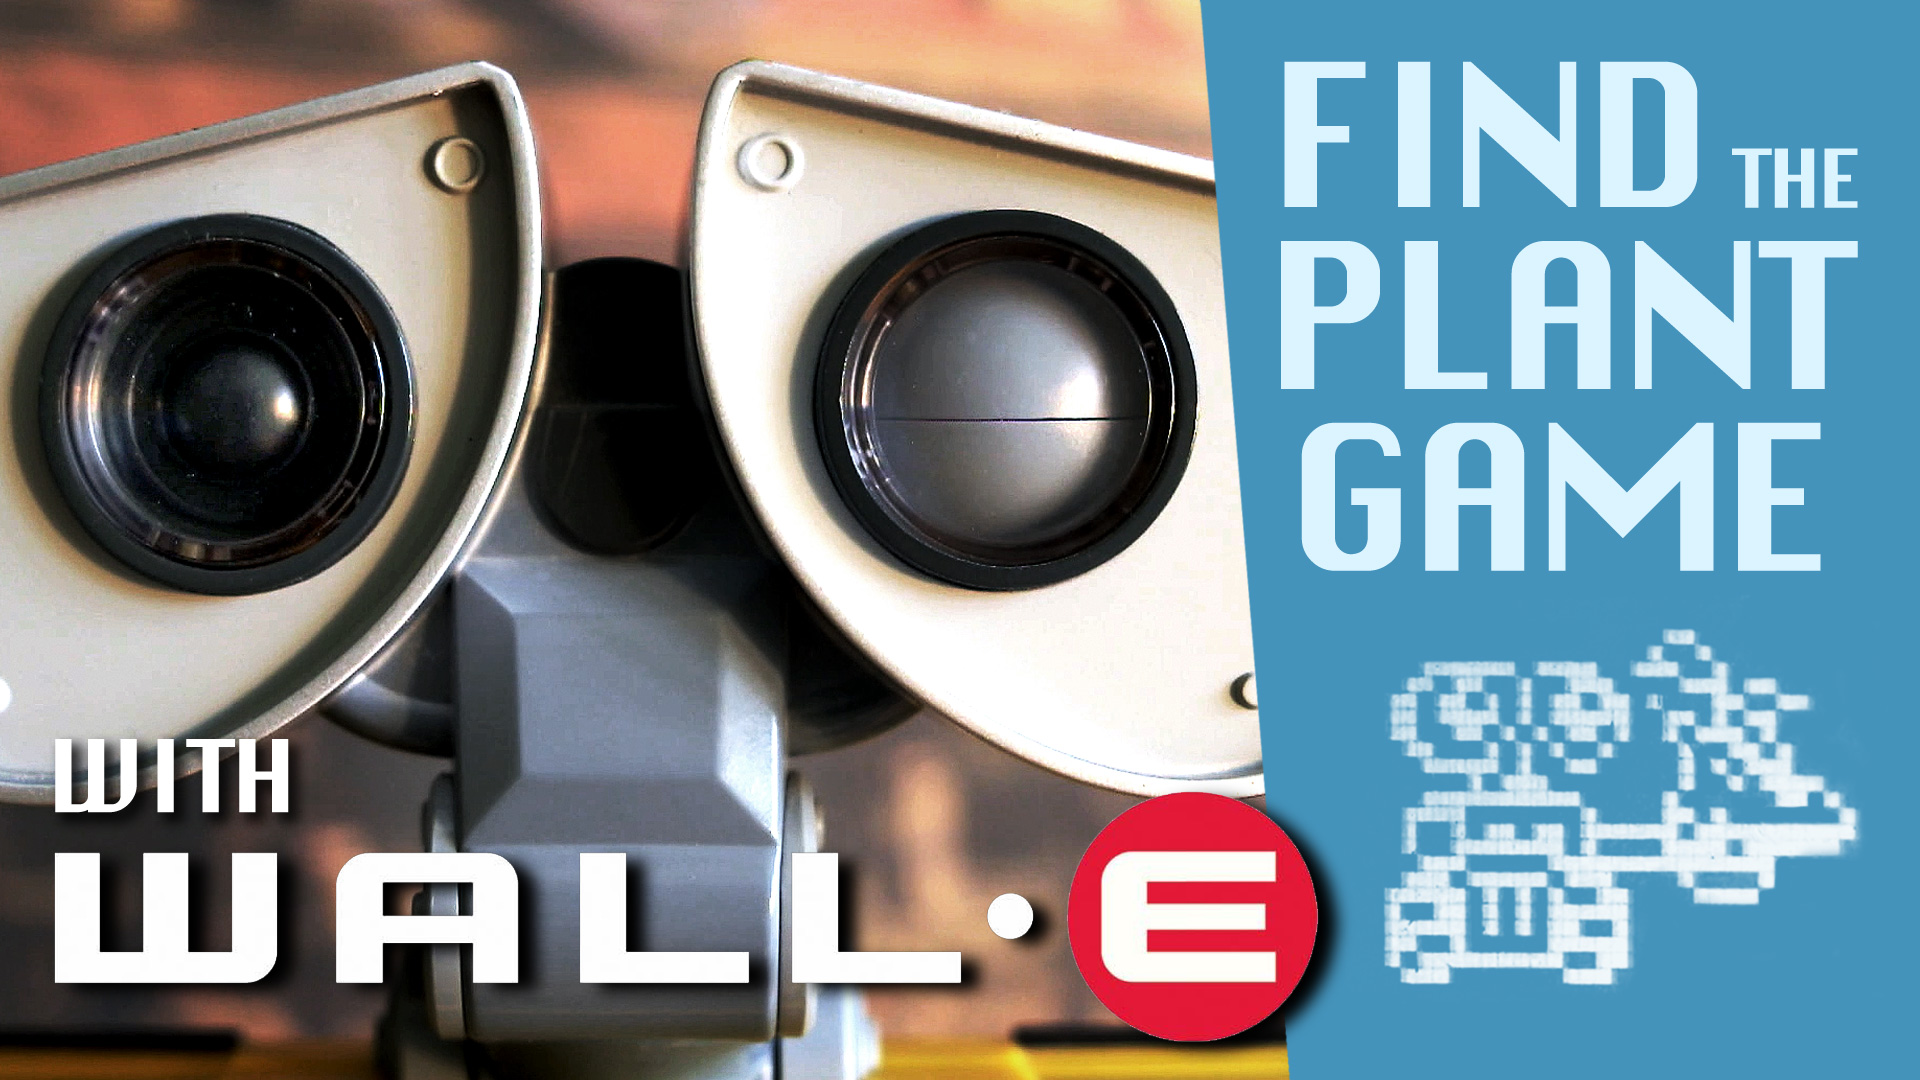 WALL-E Laptop Find the Plant Game - Play along fun